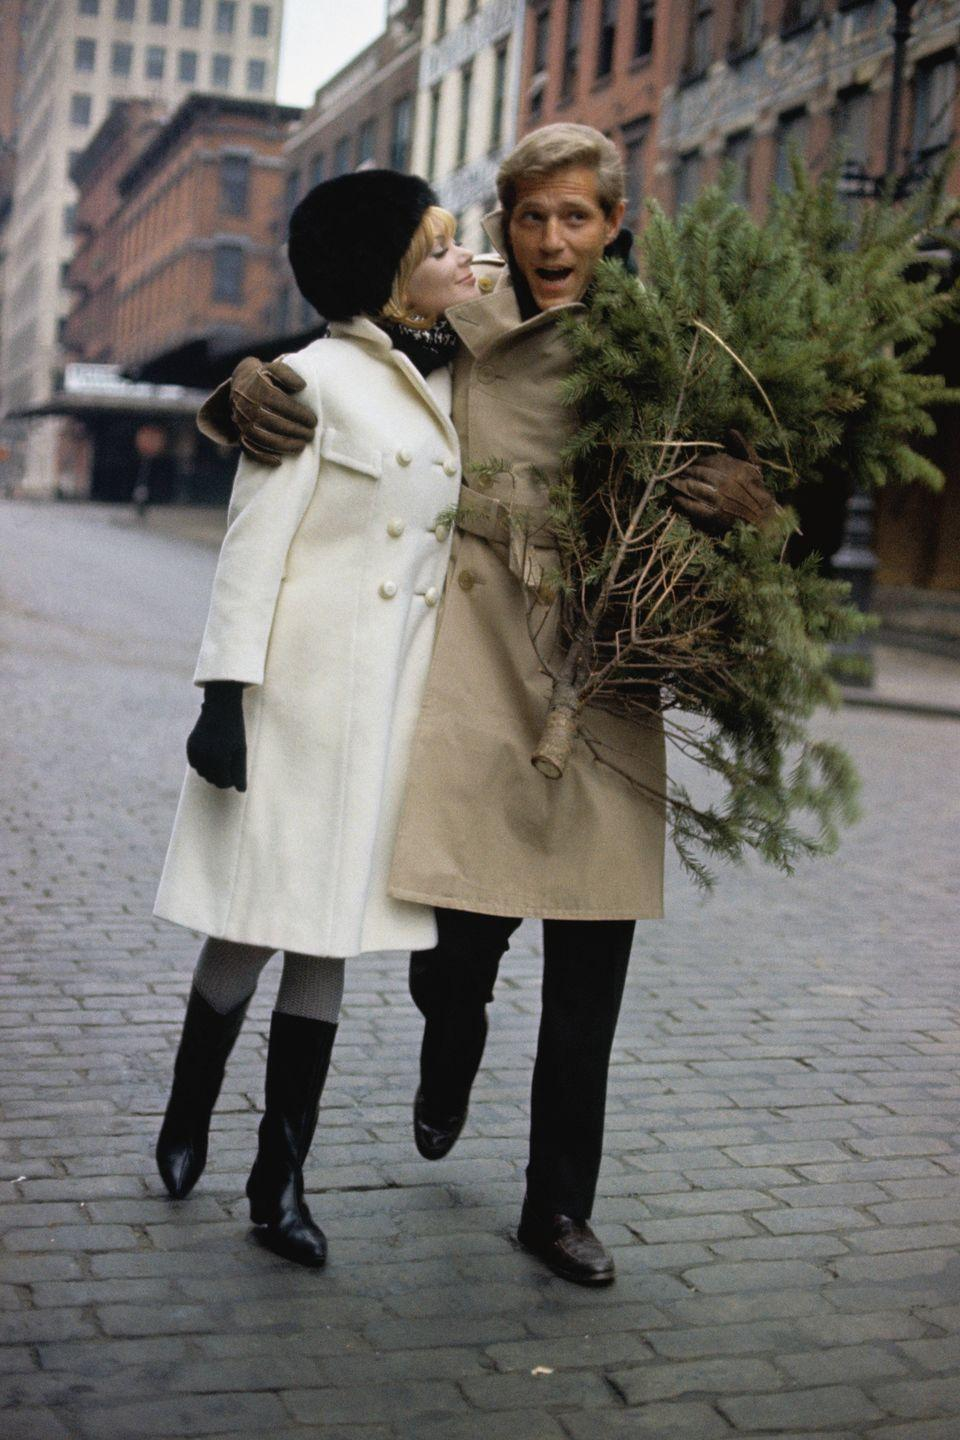 <p>George Segal bundled up in a fashionable beige trench coat, as he strolled through New York City with model Maggy London under one arm and a Christmas tree under the other. </p>